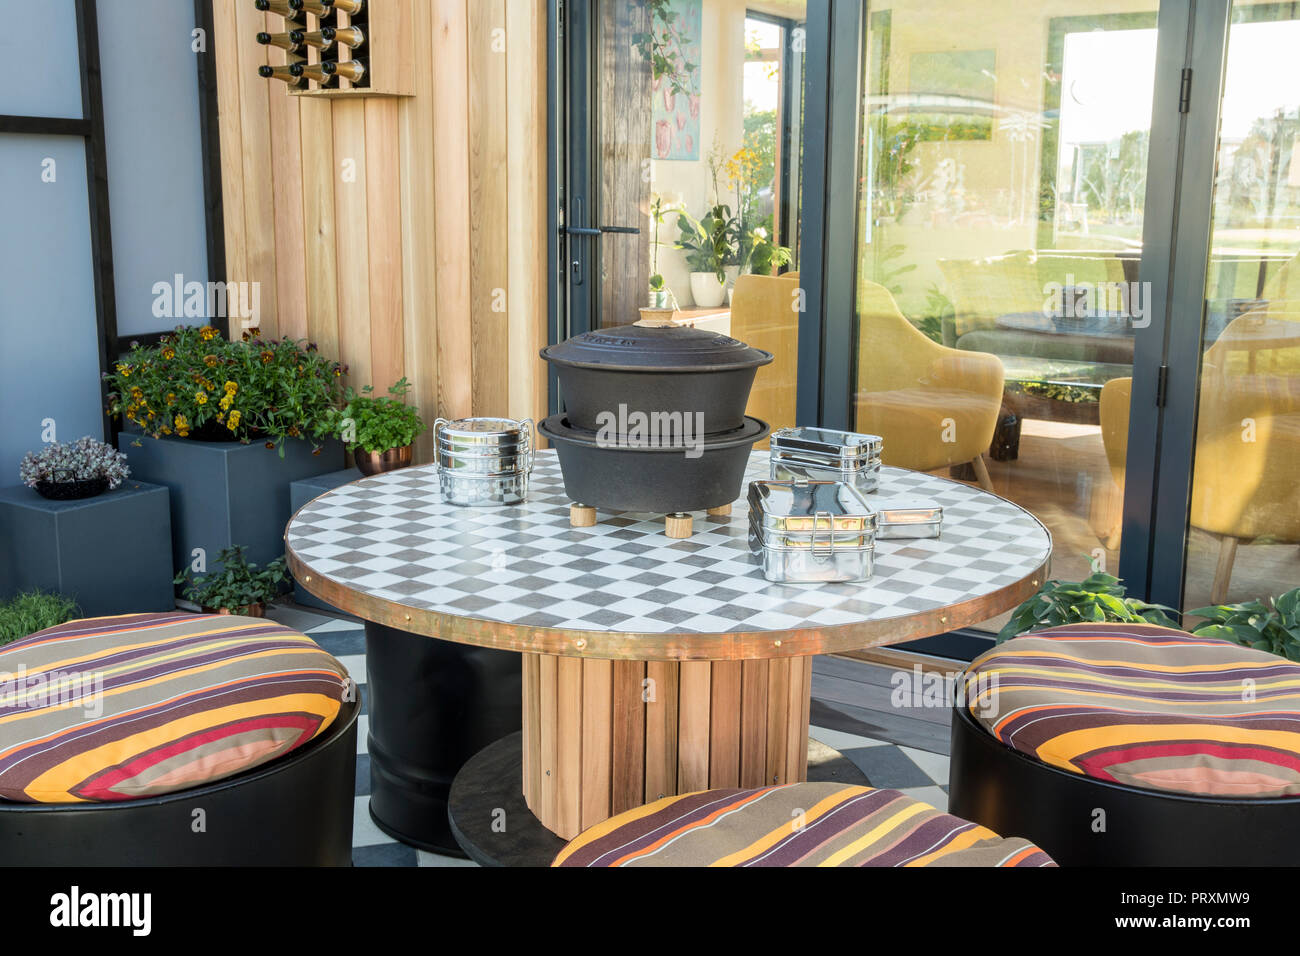 Balcony Garden With Repurposed Recycled Wooden Table And Oil Drum Seats Cushions Outdoor Dining Area Patio Violas Succulents And Micro Greens Grow Stock Photo Alamy